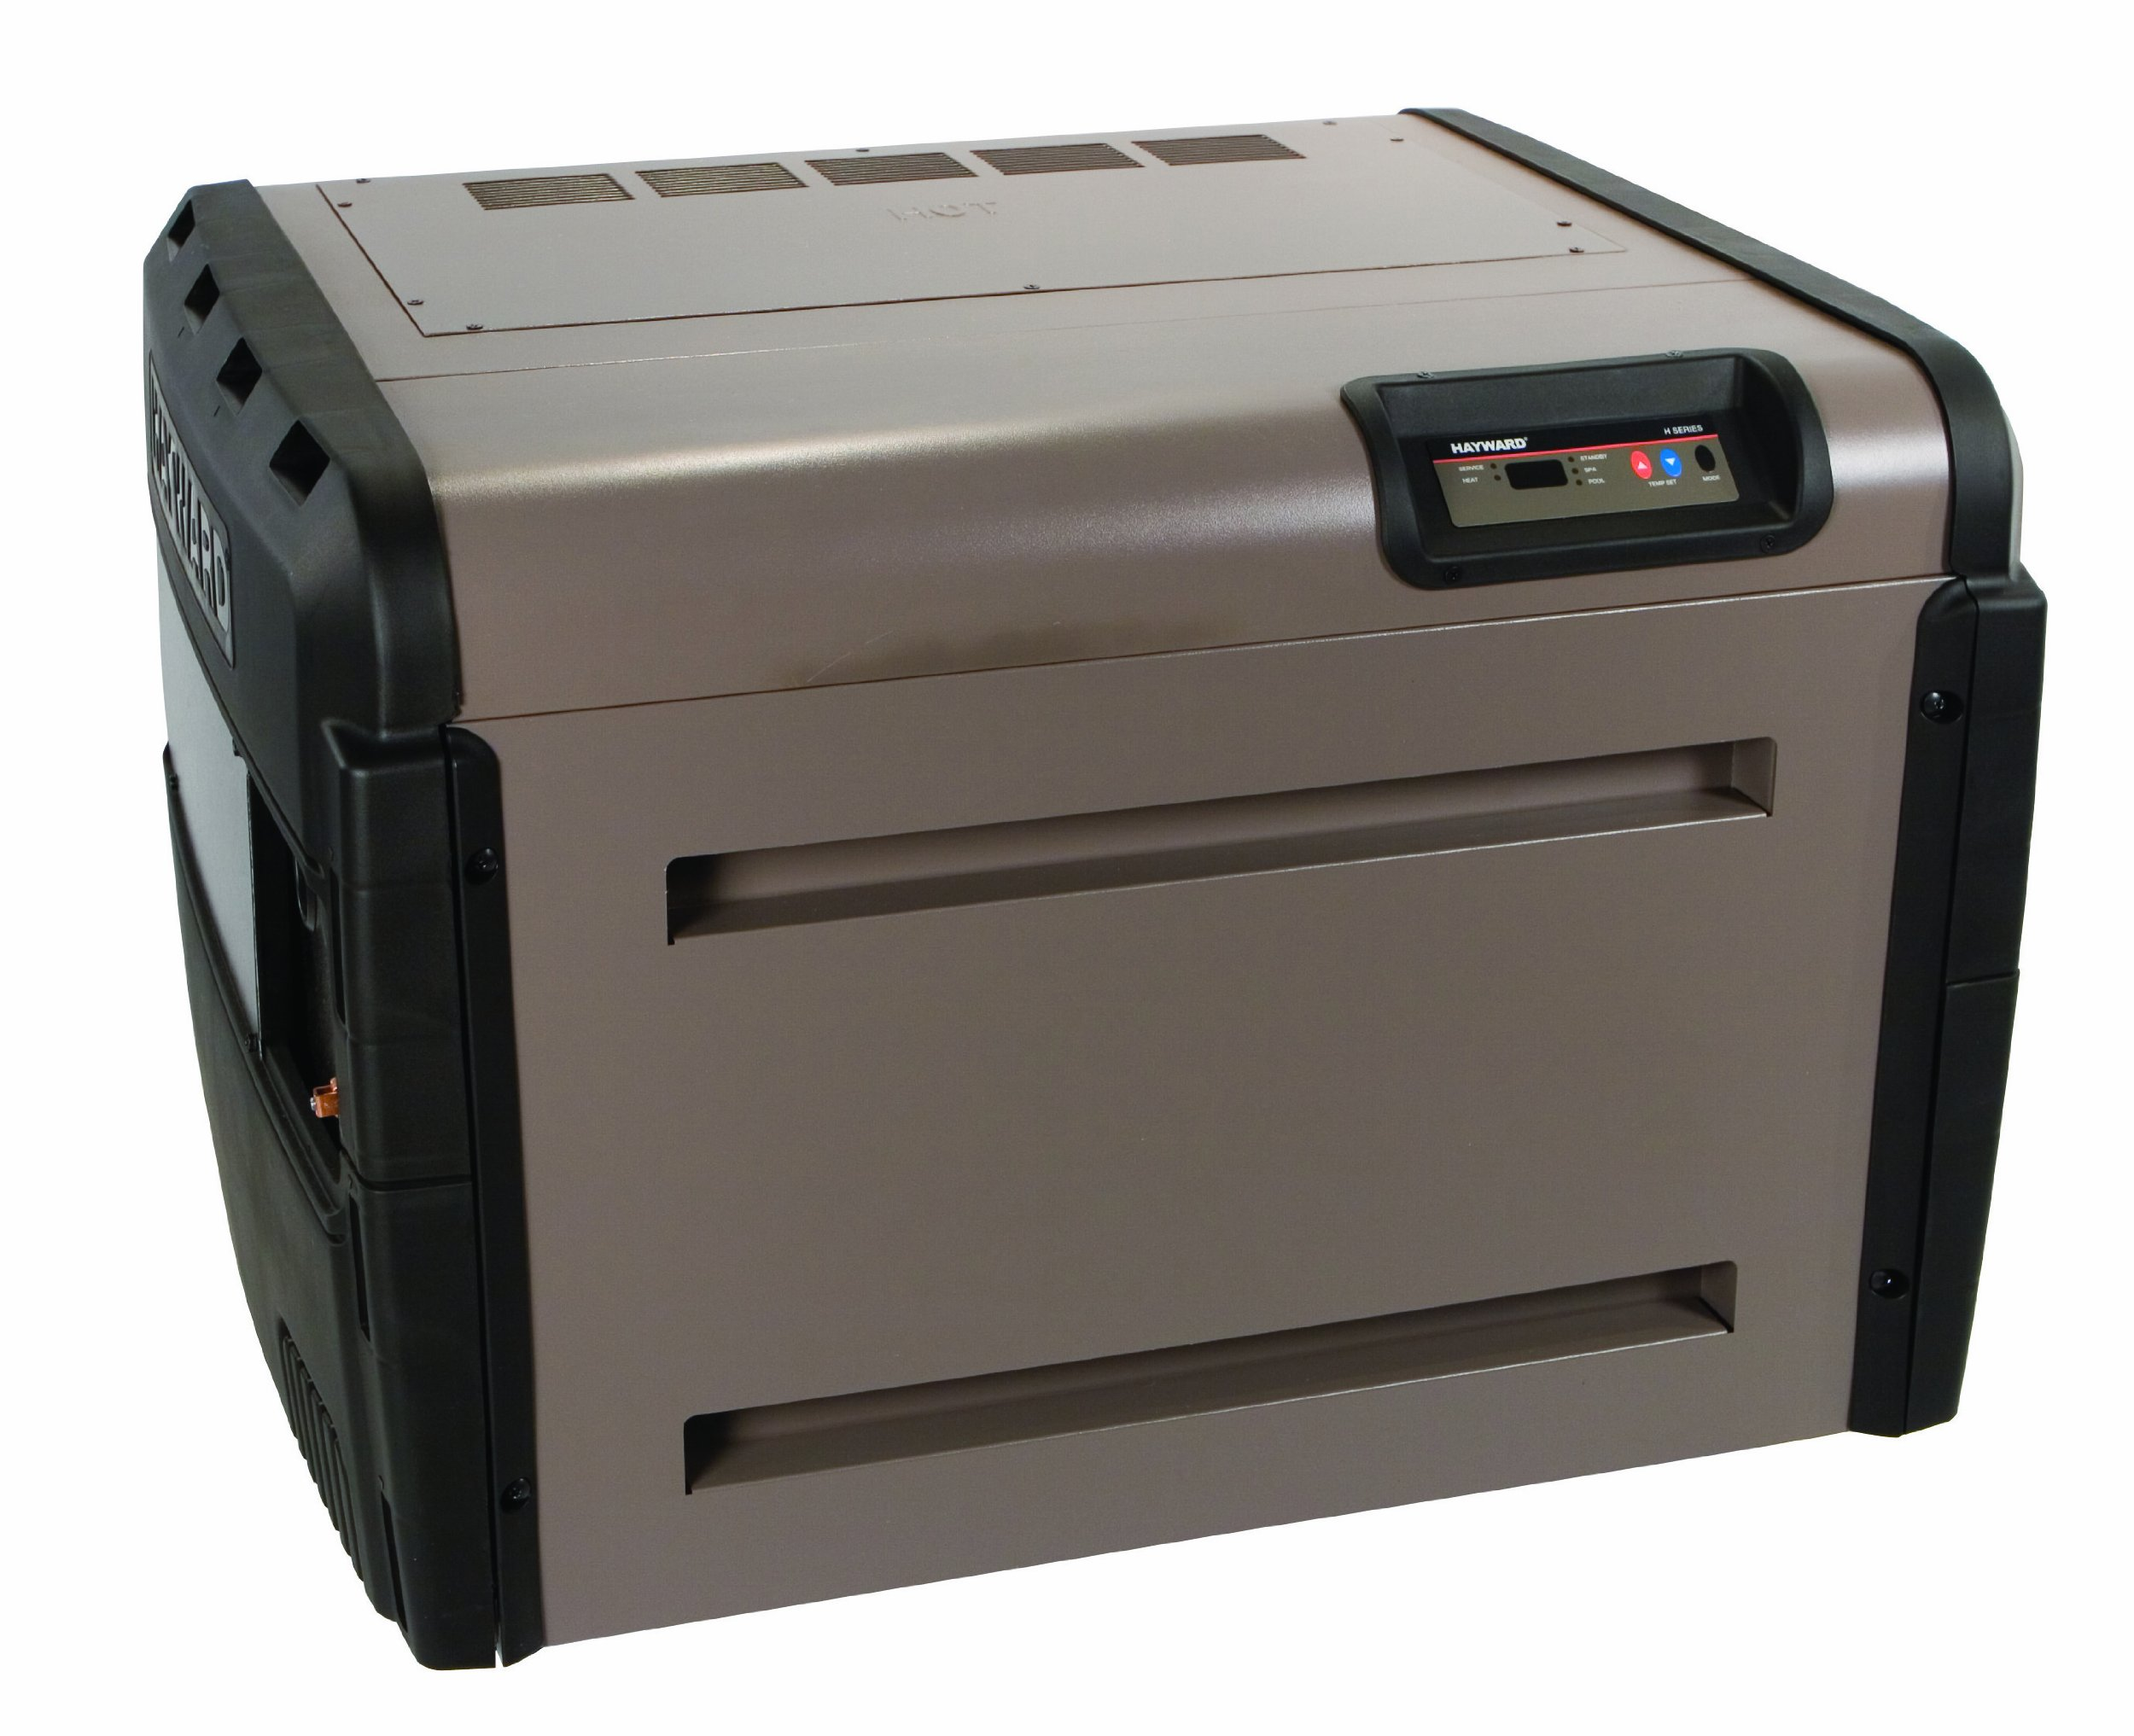 Hayward H300FDP Universal H-Series Low NOx 300,000 BTU Propane Gas Residential Pool and Spa Heater